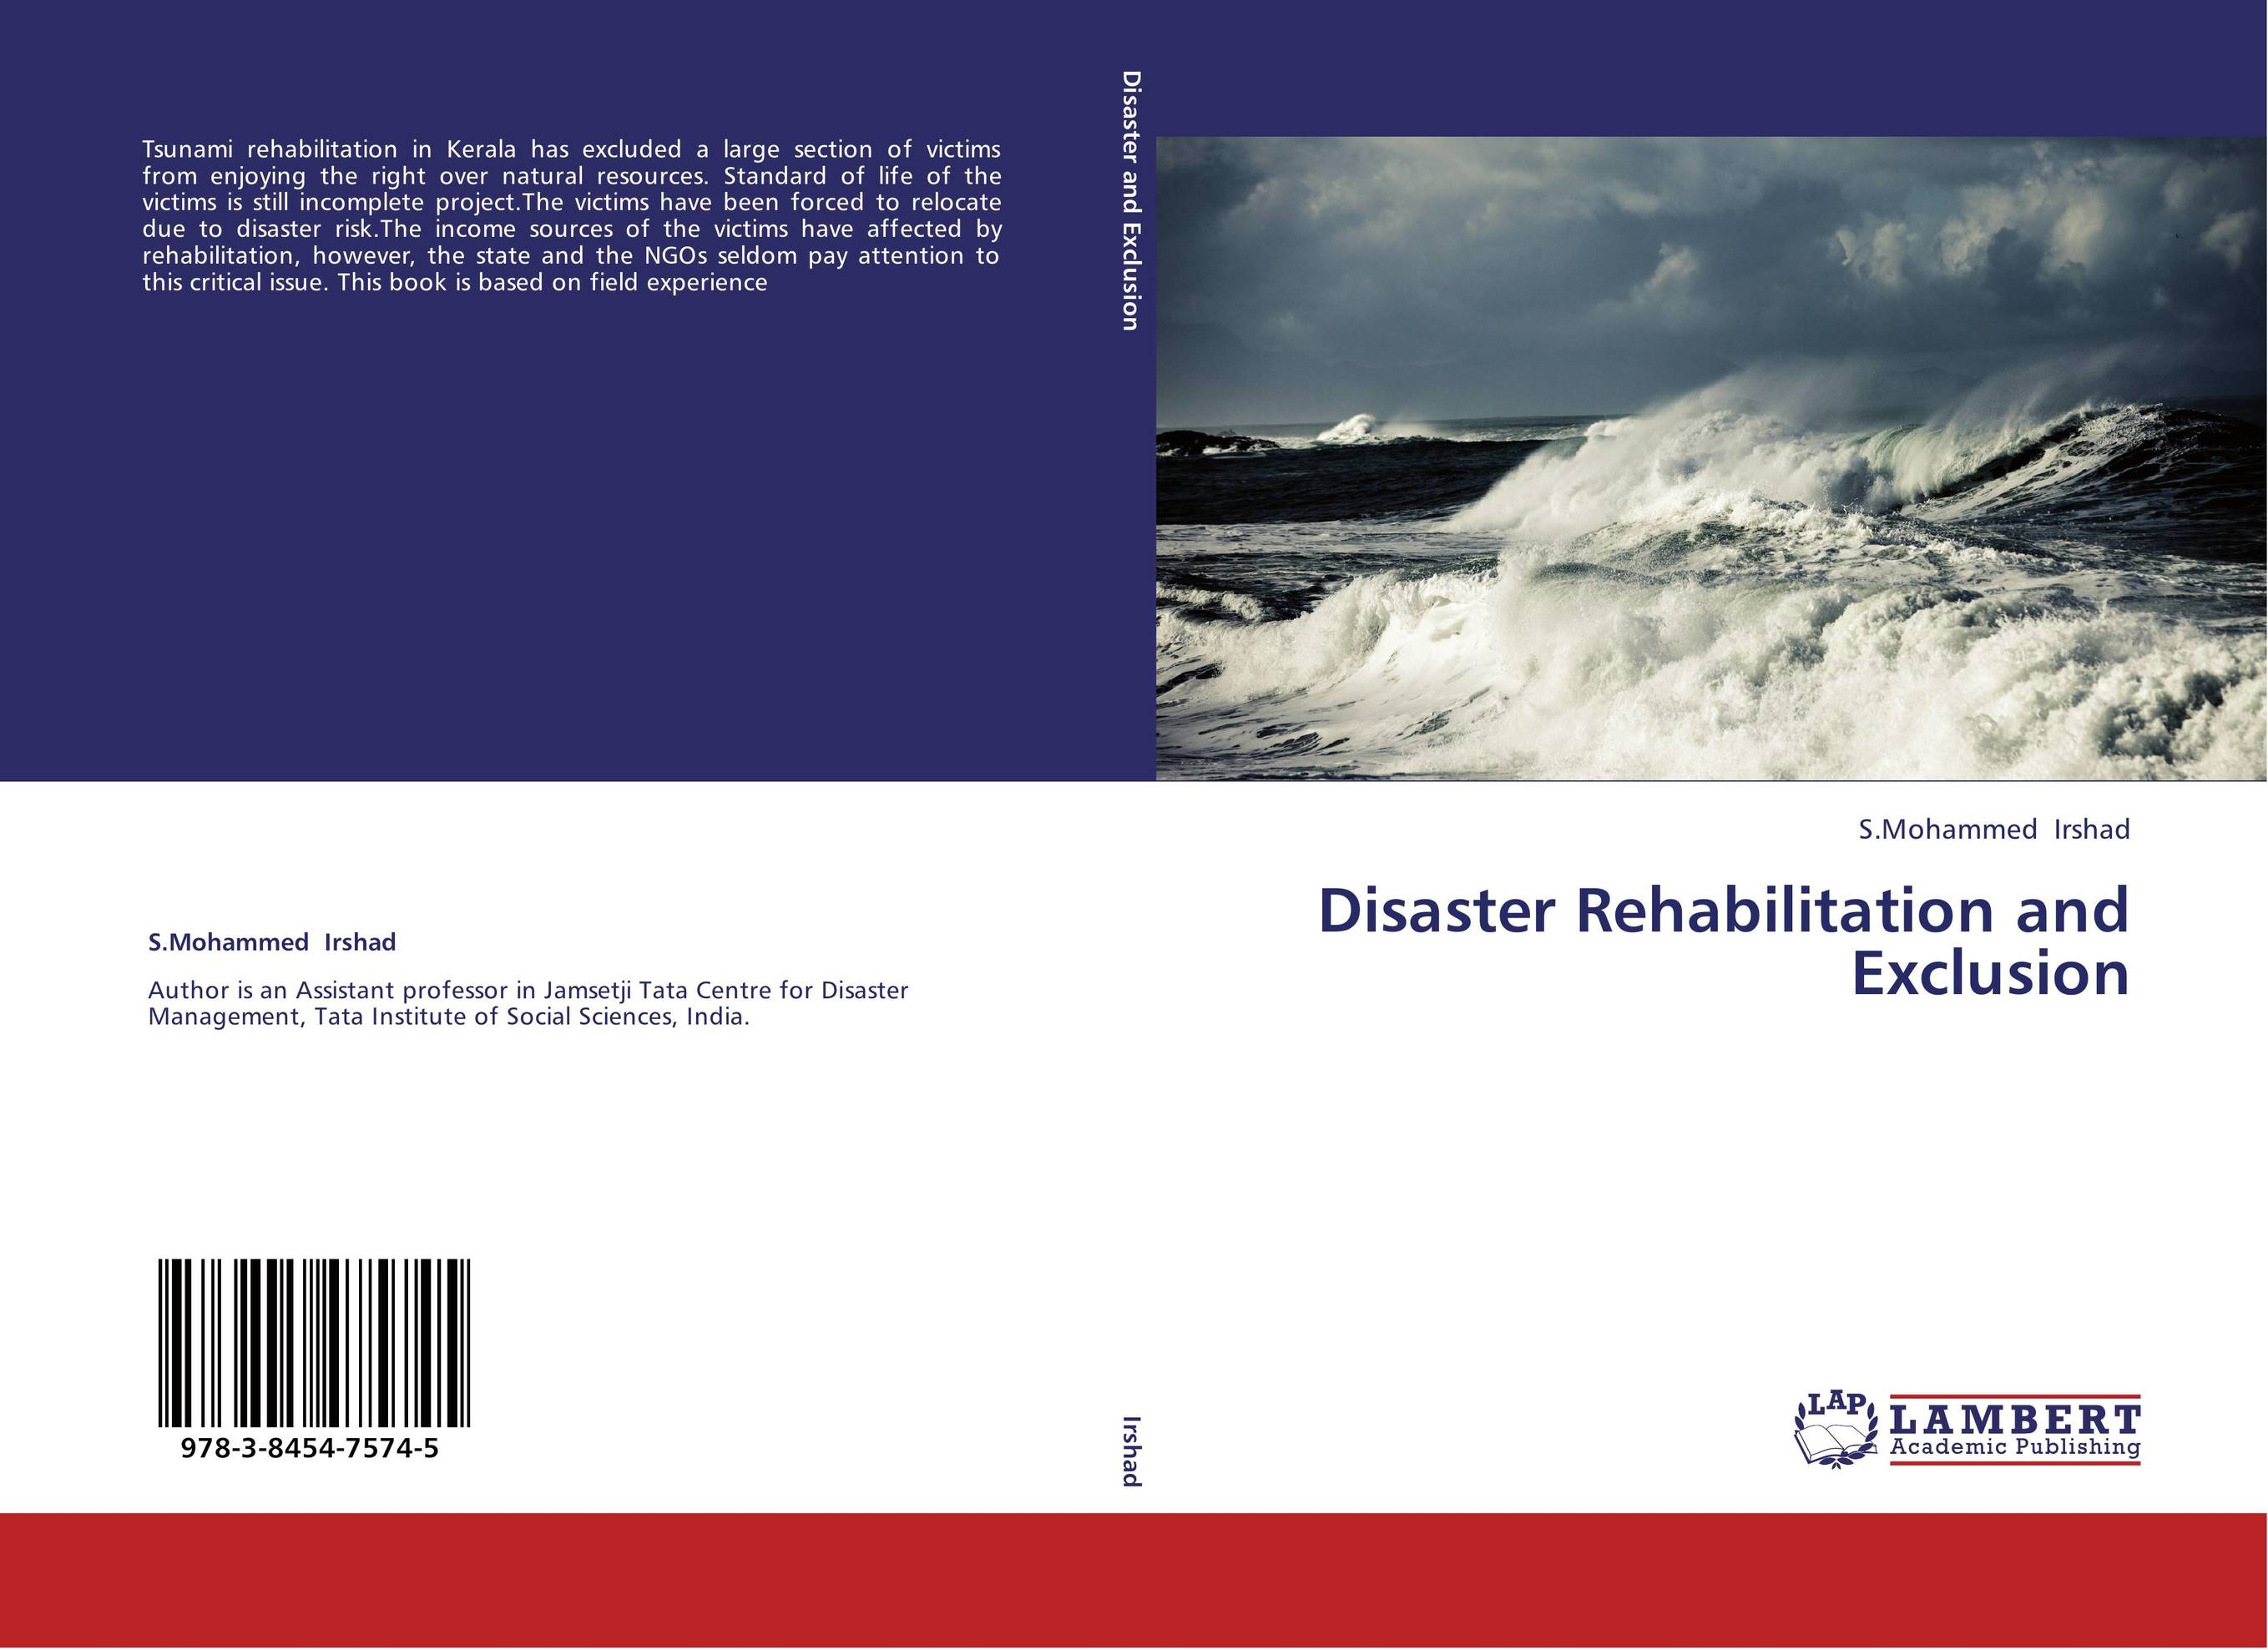 disaster rehabilitation complex essay Evolution of complex disasters lancet 4 gosney, j, reinhardt, jd, haig, aj, li, j developing post-disaster physical rehabilitation: role of the world health organization liaison sub-committee on rehabilitation disaster relief of the international society of physical and rehabilitation medicine.